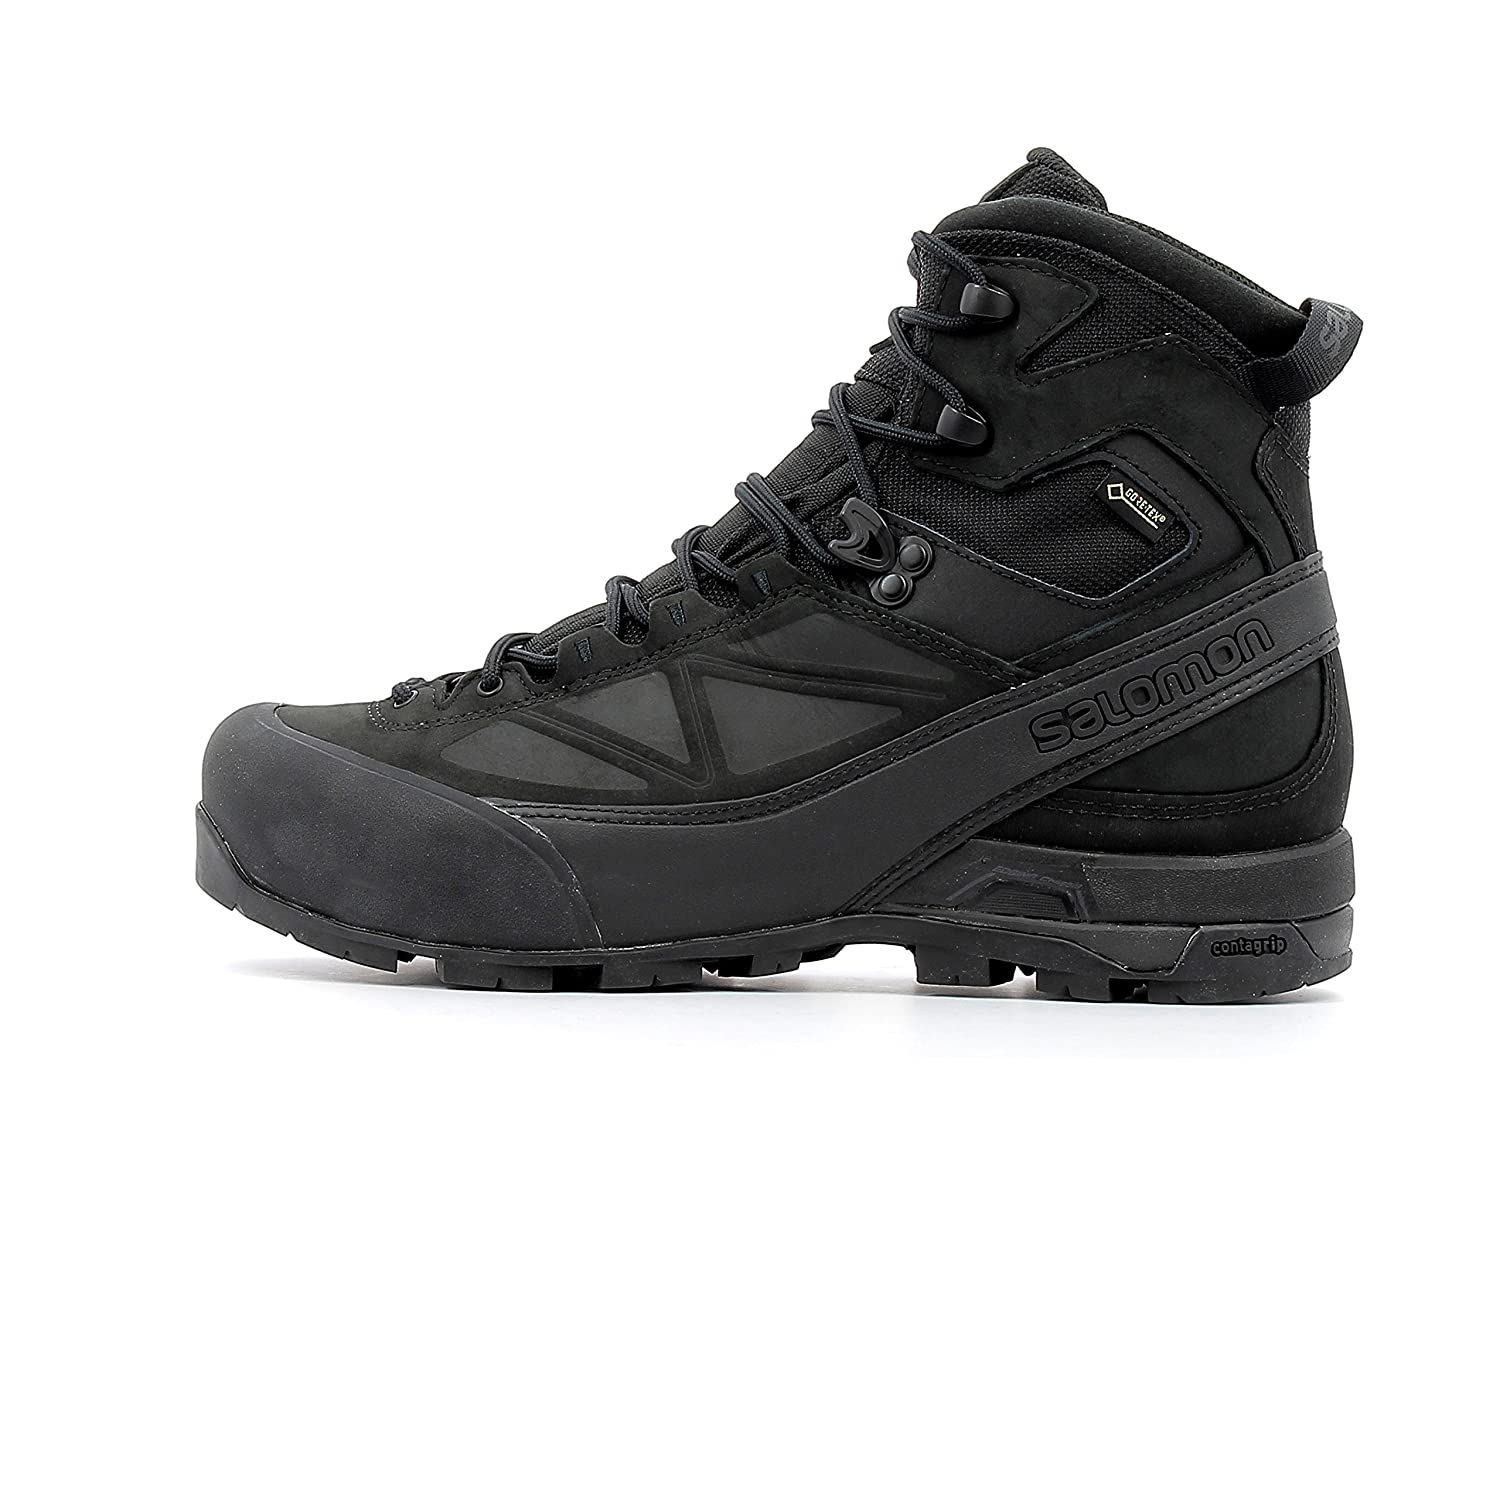 Salomon Forces X ALP MTN GTX B076BKDLGK 12 D(M) US|Black